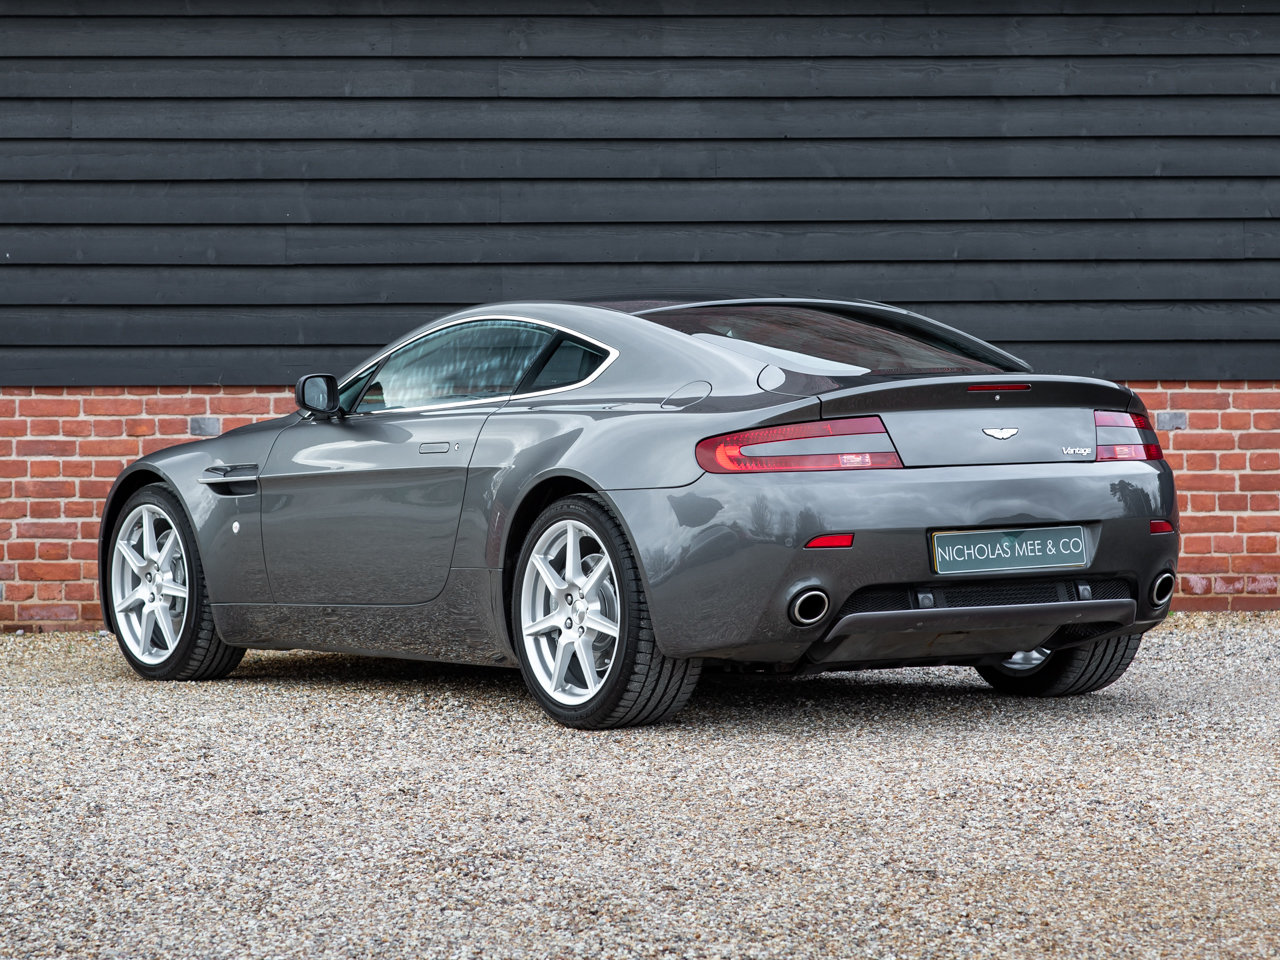 2008 Aston Martin V8 Vantage - Manual For Sale (picture 3 of 12)